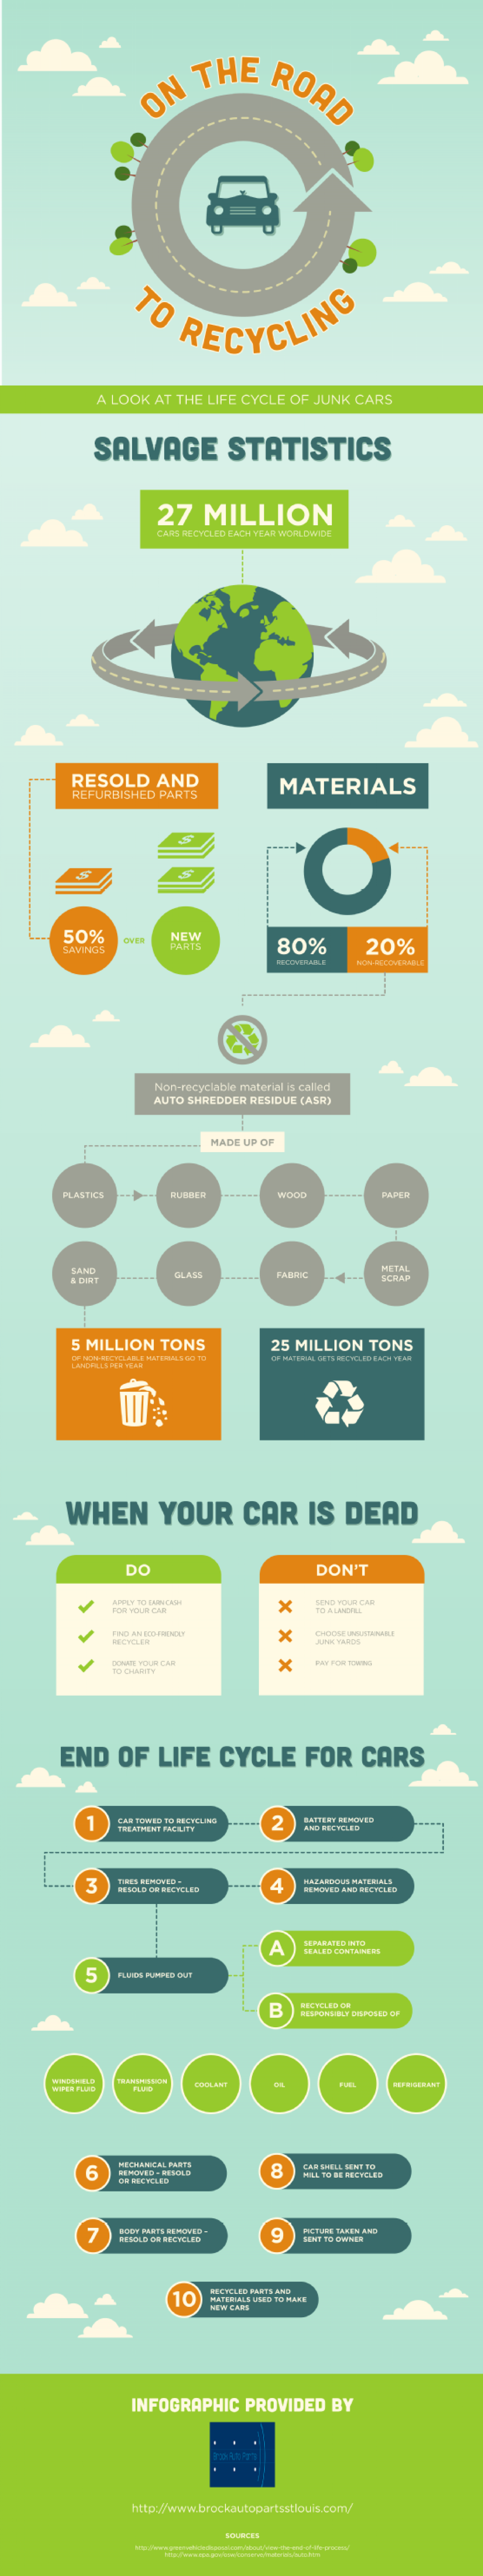 On The Road To Recycling Infographic